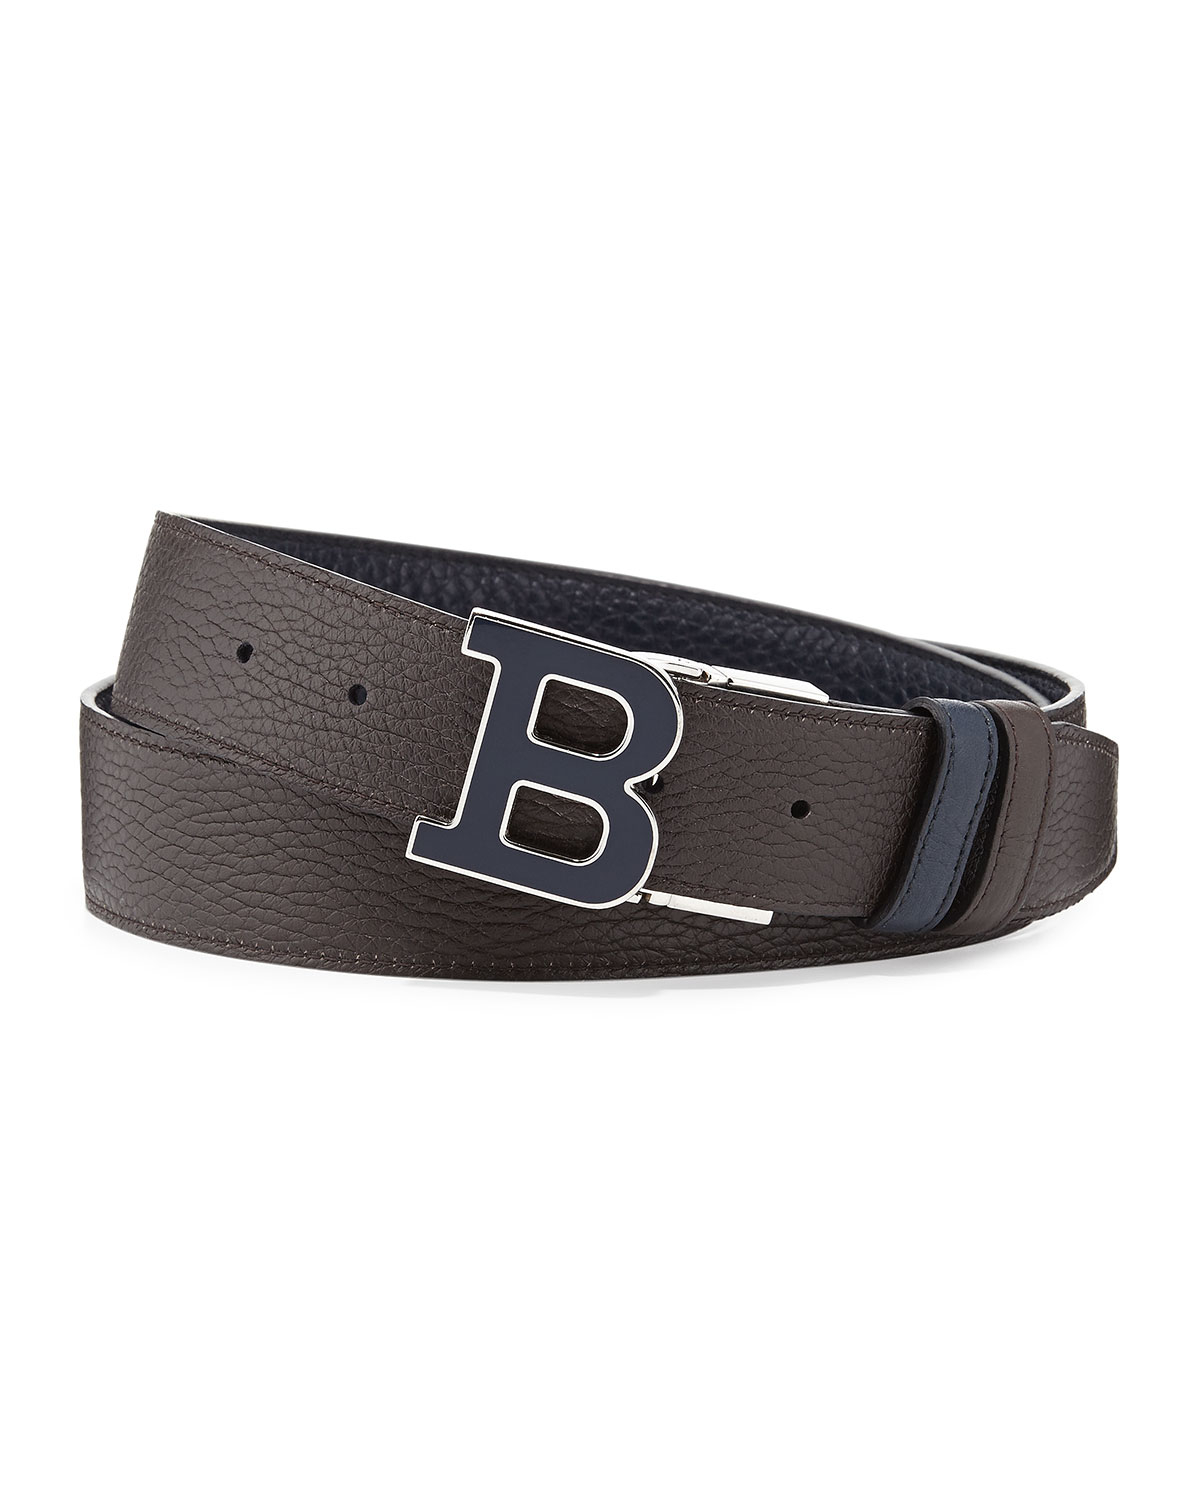 Lyst Bally Calf Leather B Buckle Belt In Blue For Men